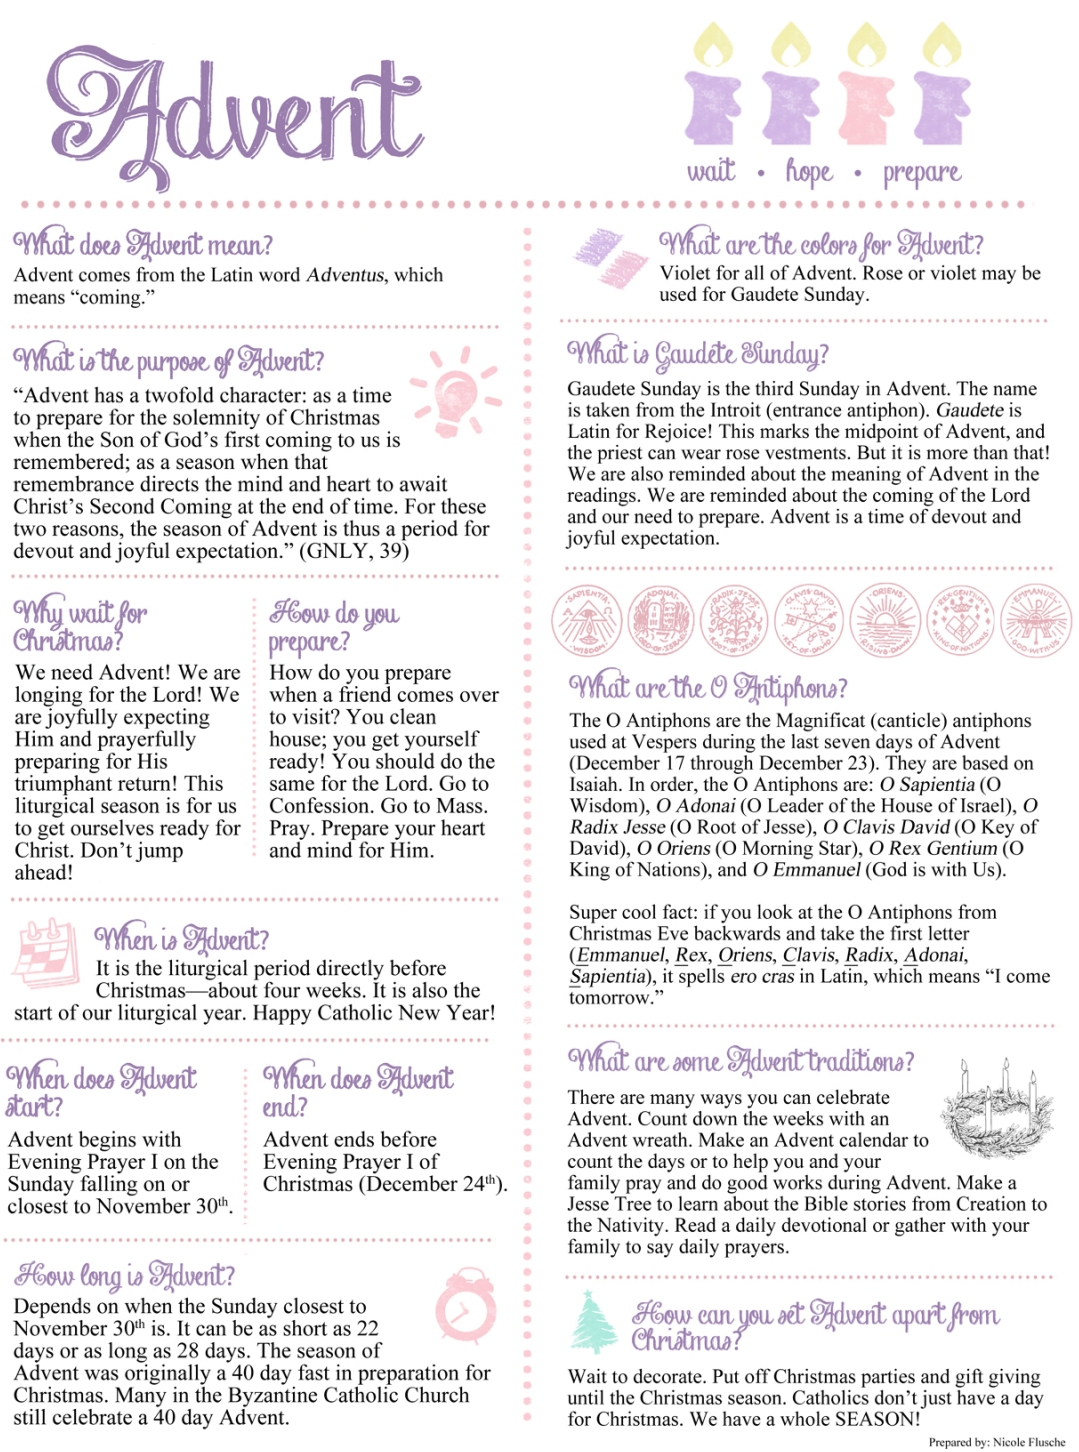 Advent Handout – Mrs. Flusche's House with regard to Catholic Advent Calendar Printable